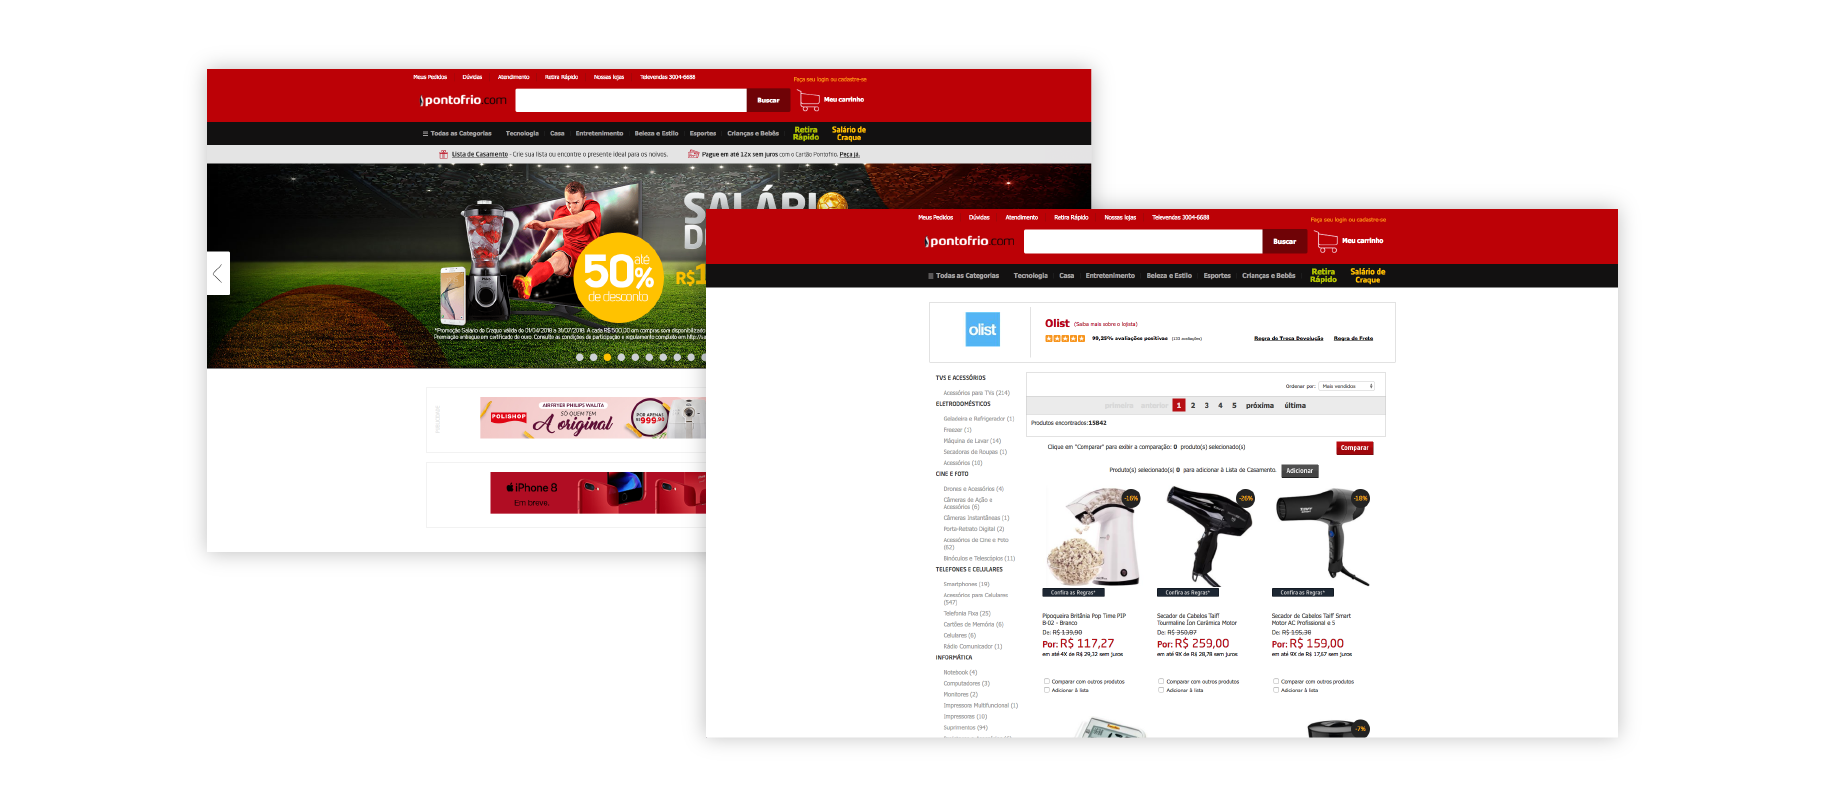 banners-site-marketplaces-pontofrio_Screenshots.png